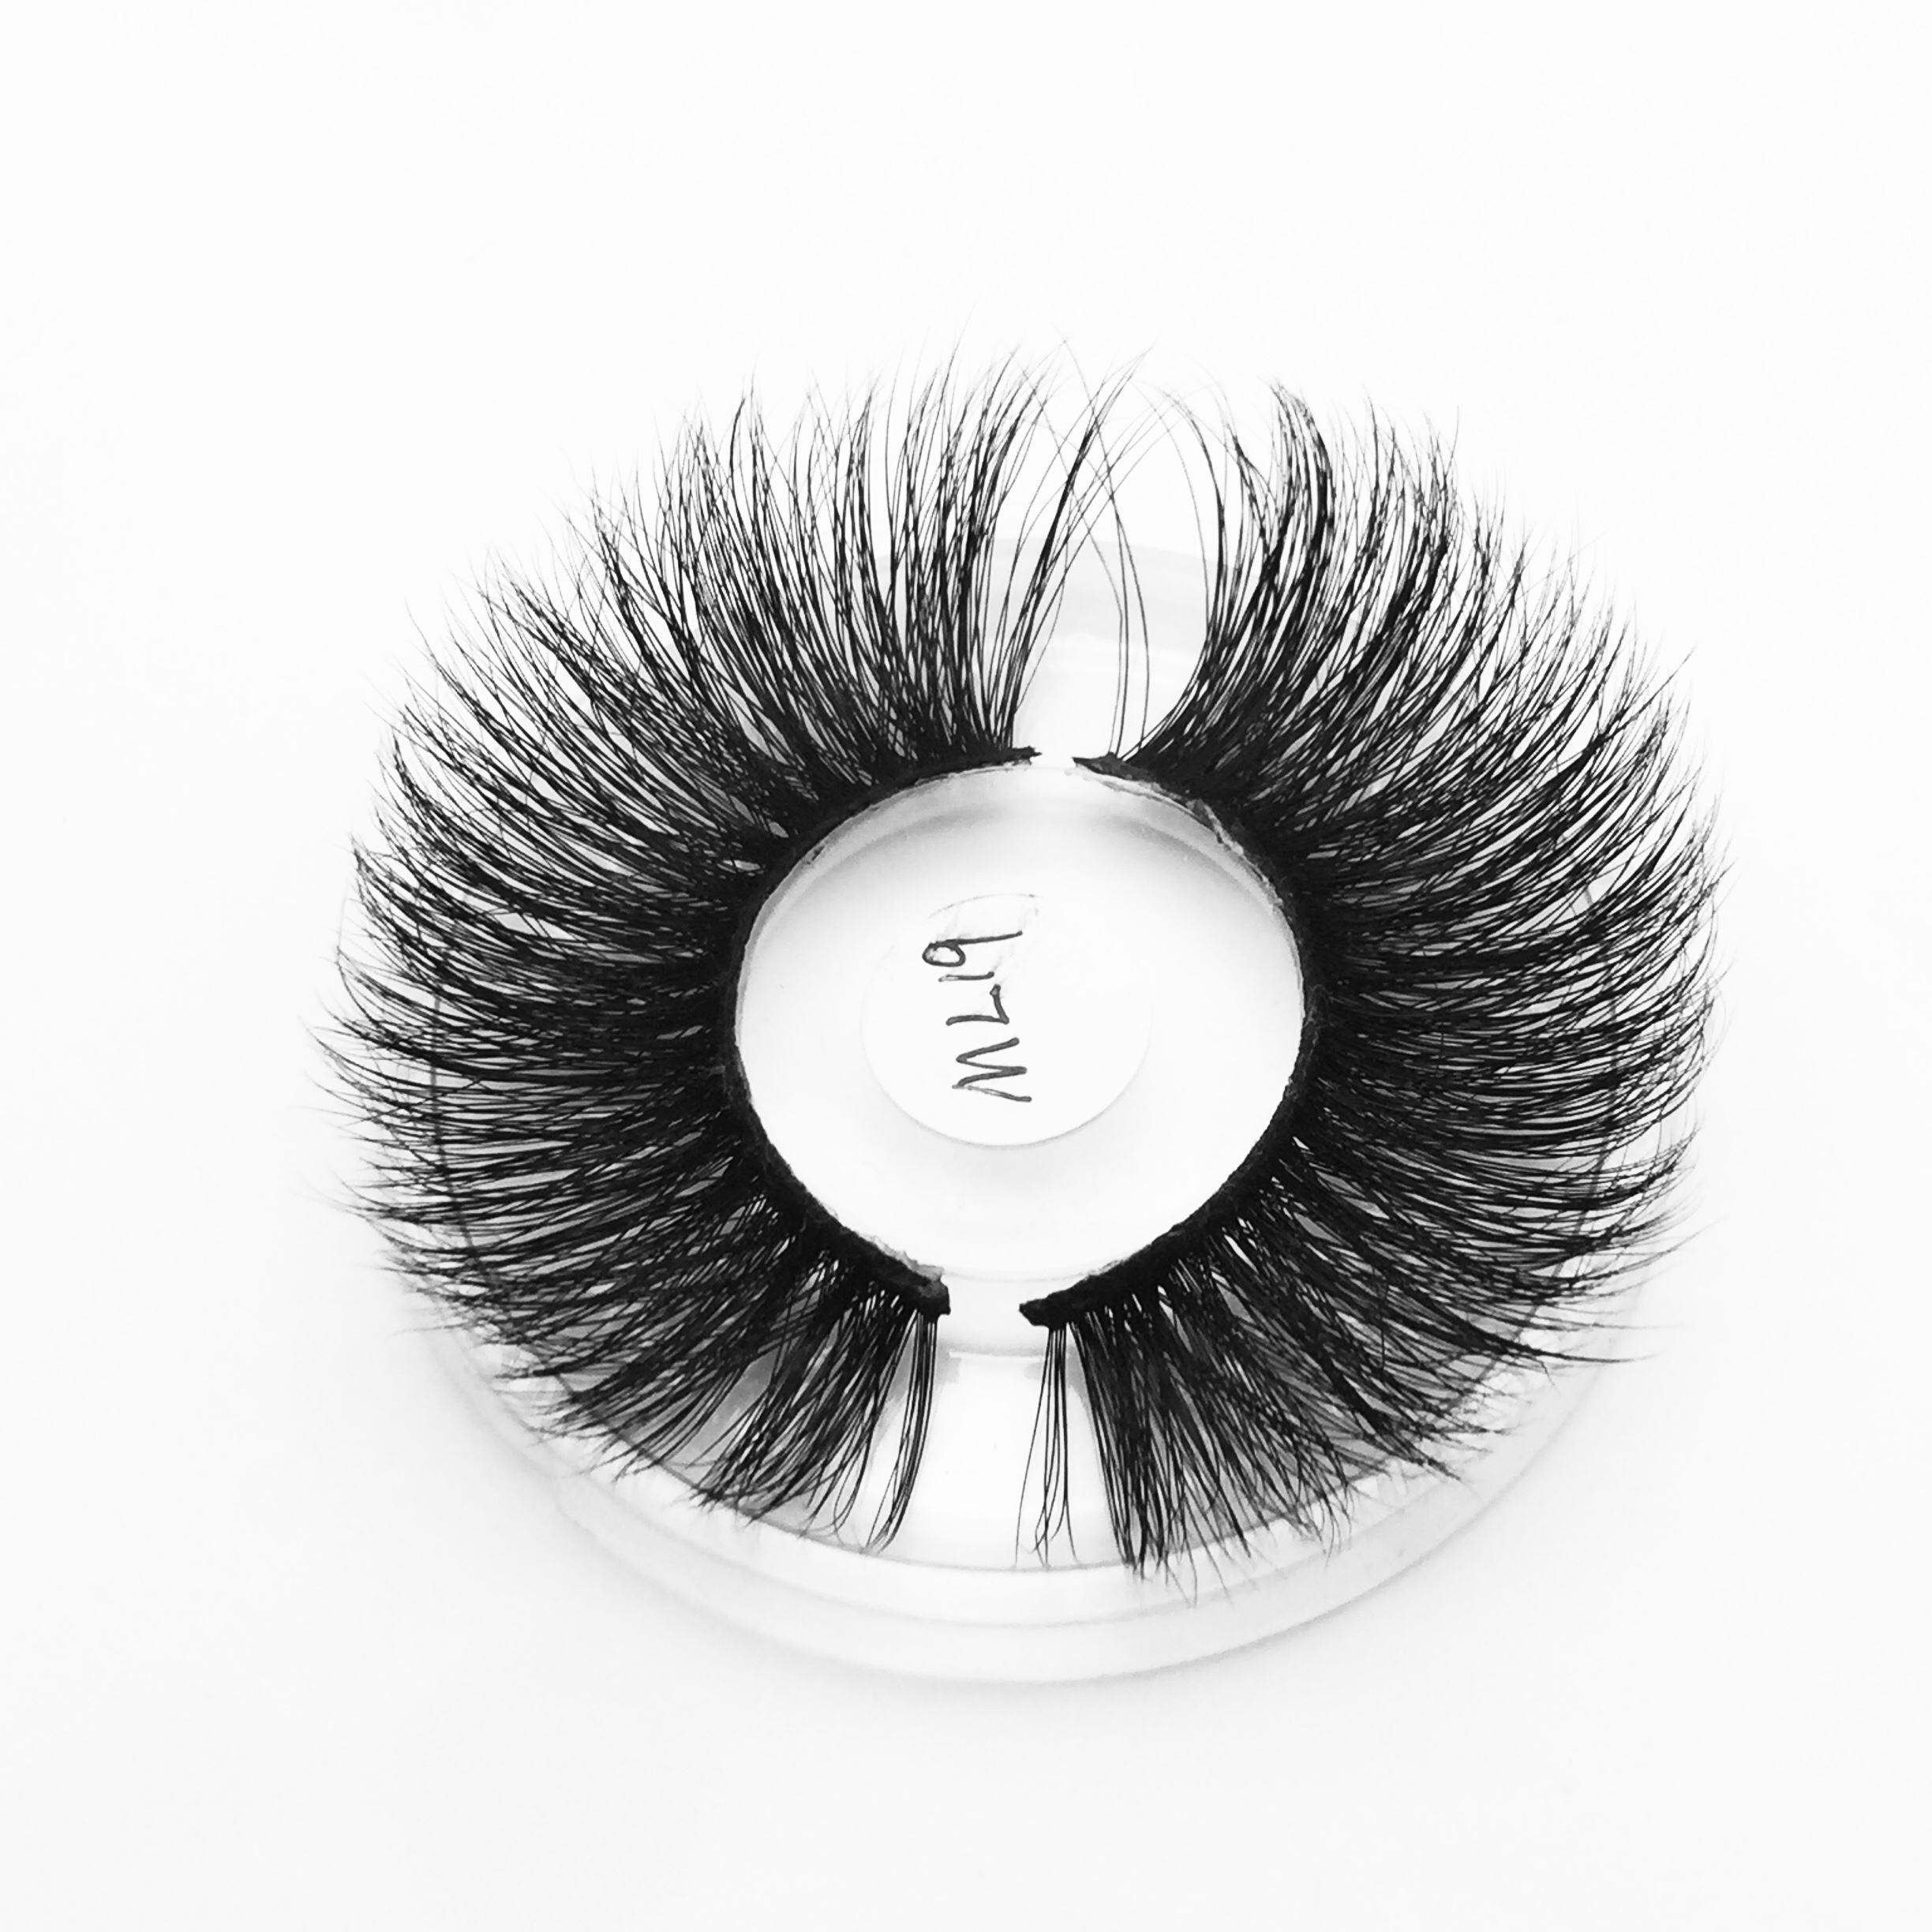 25mm mink 3 d eyelashes with OEM package 100% real fur natural 5d mink eyelashes custom logo package China manufacturer